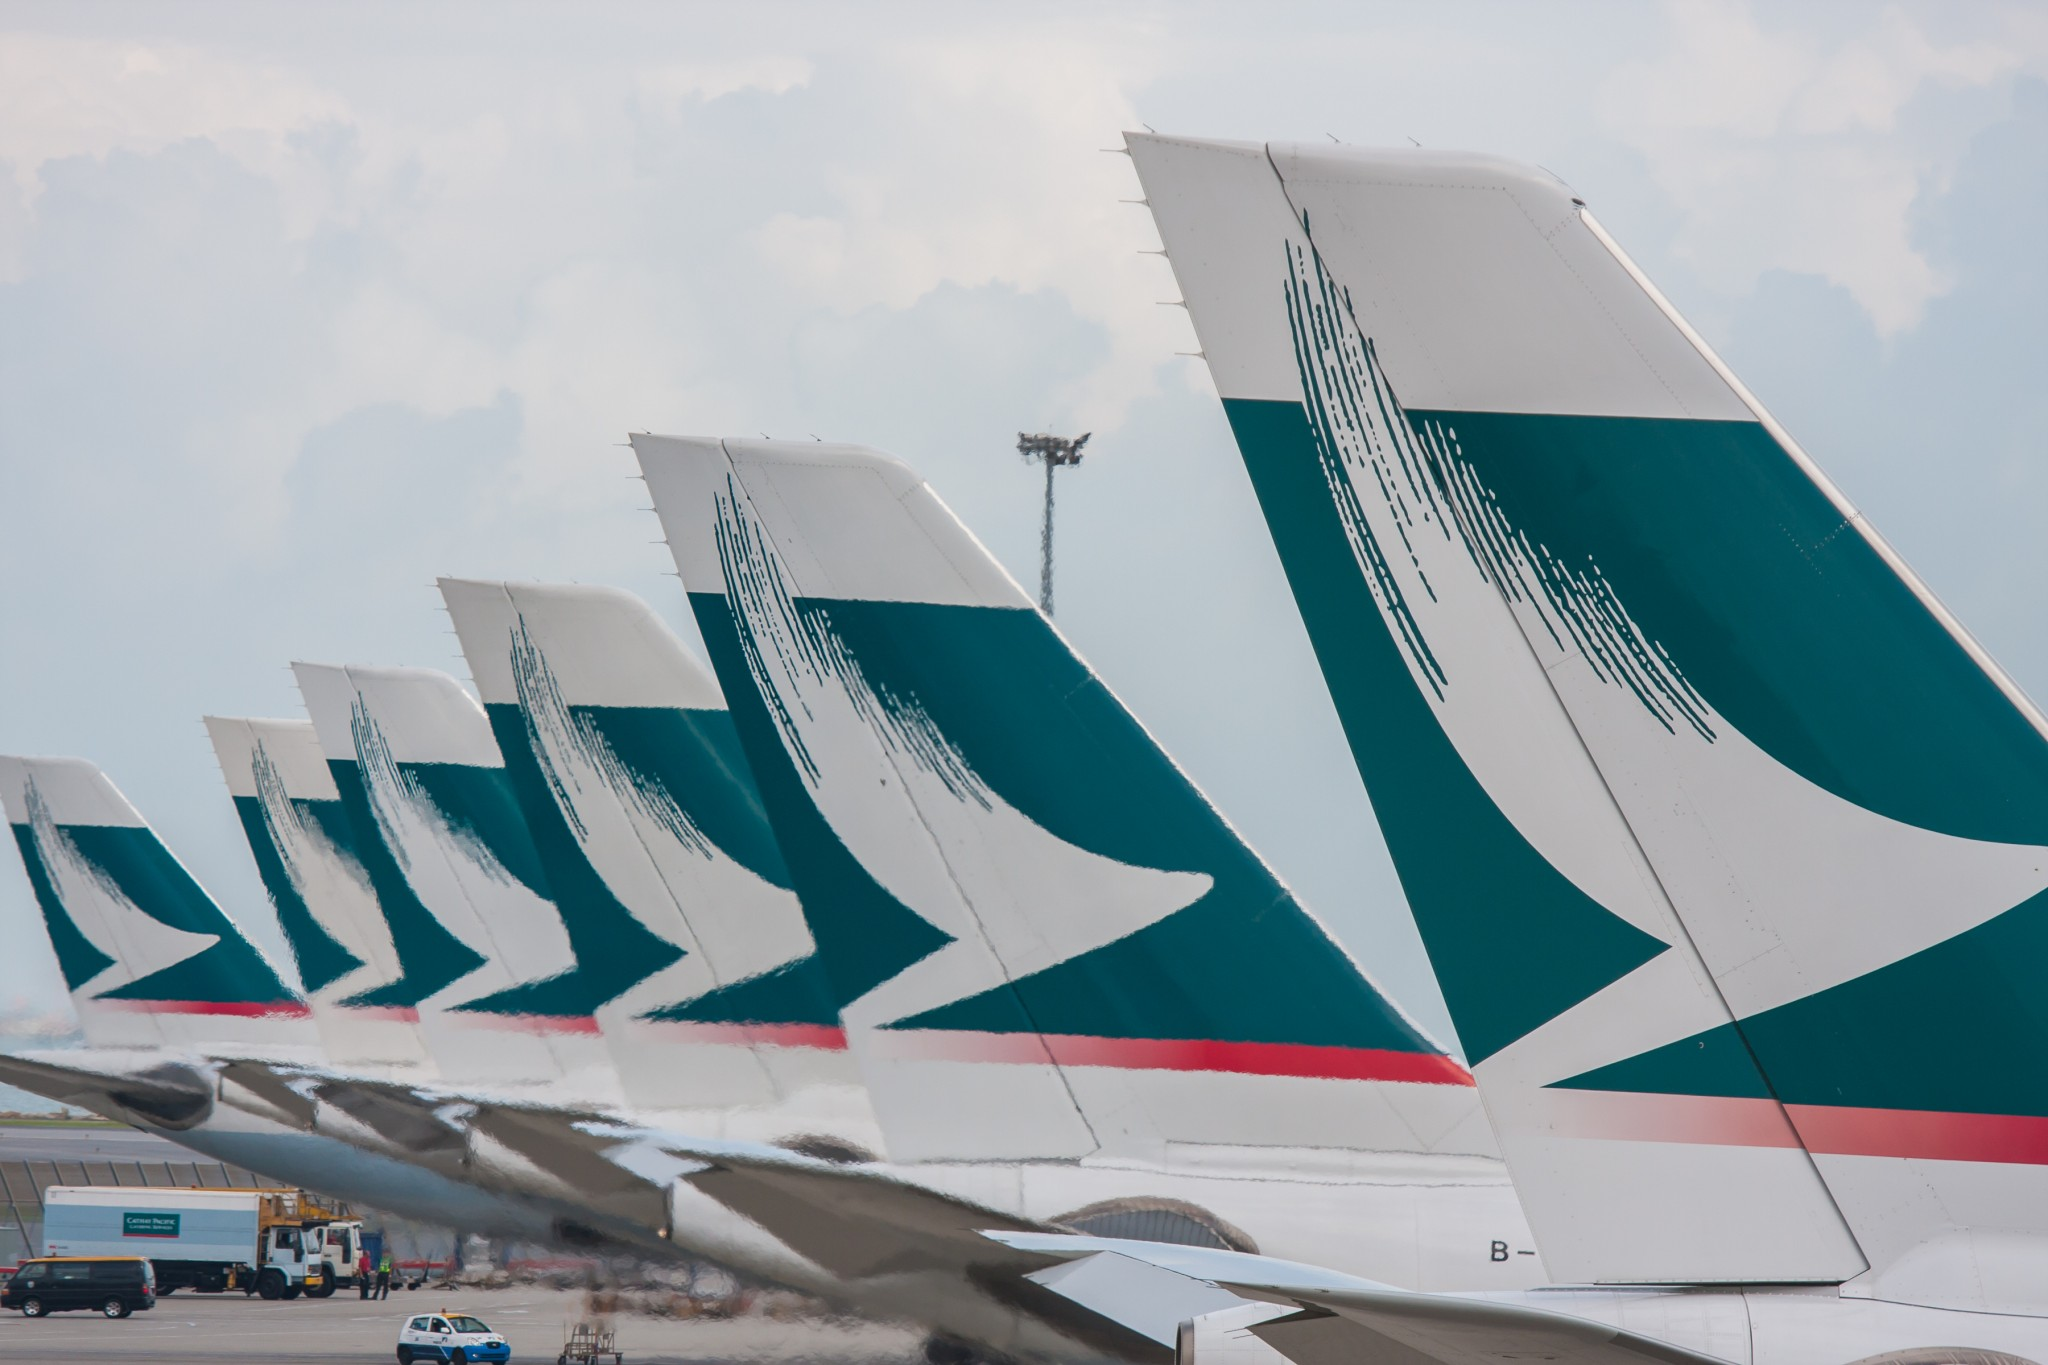 Cathay Pacific Group signs MOU for 32 A321neo aircraft; DAE completes AWAS acquisition